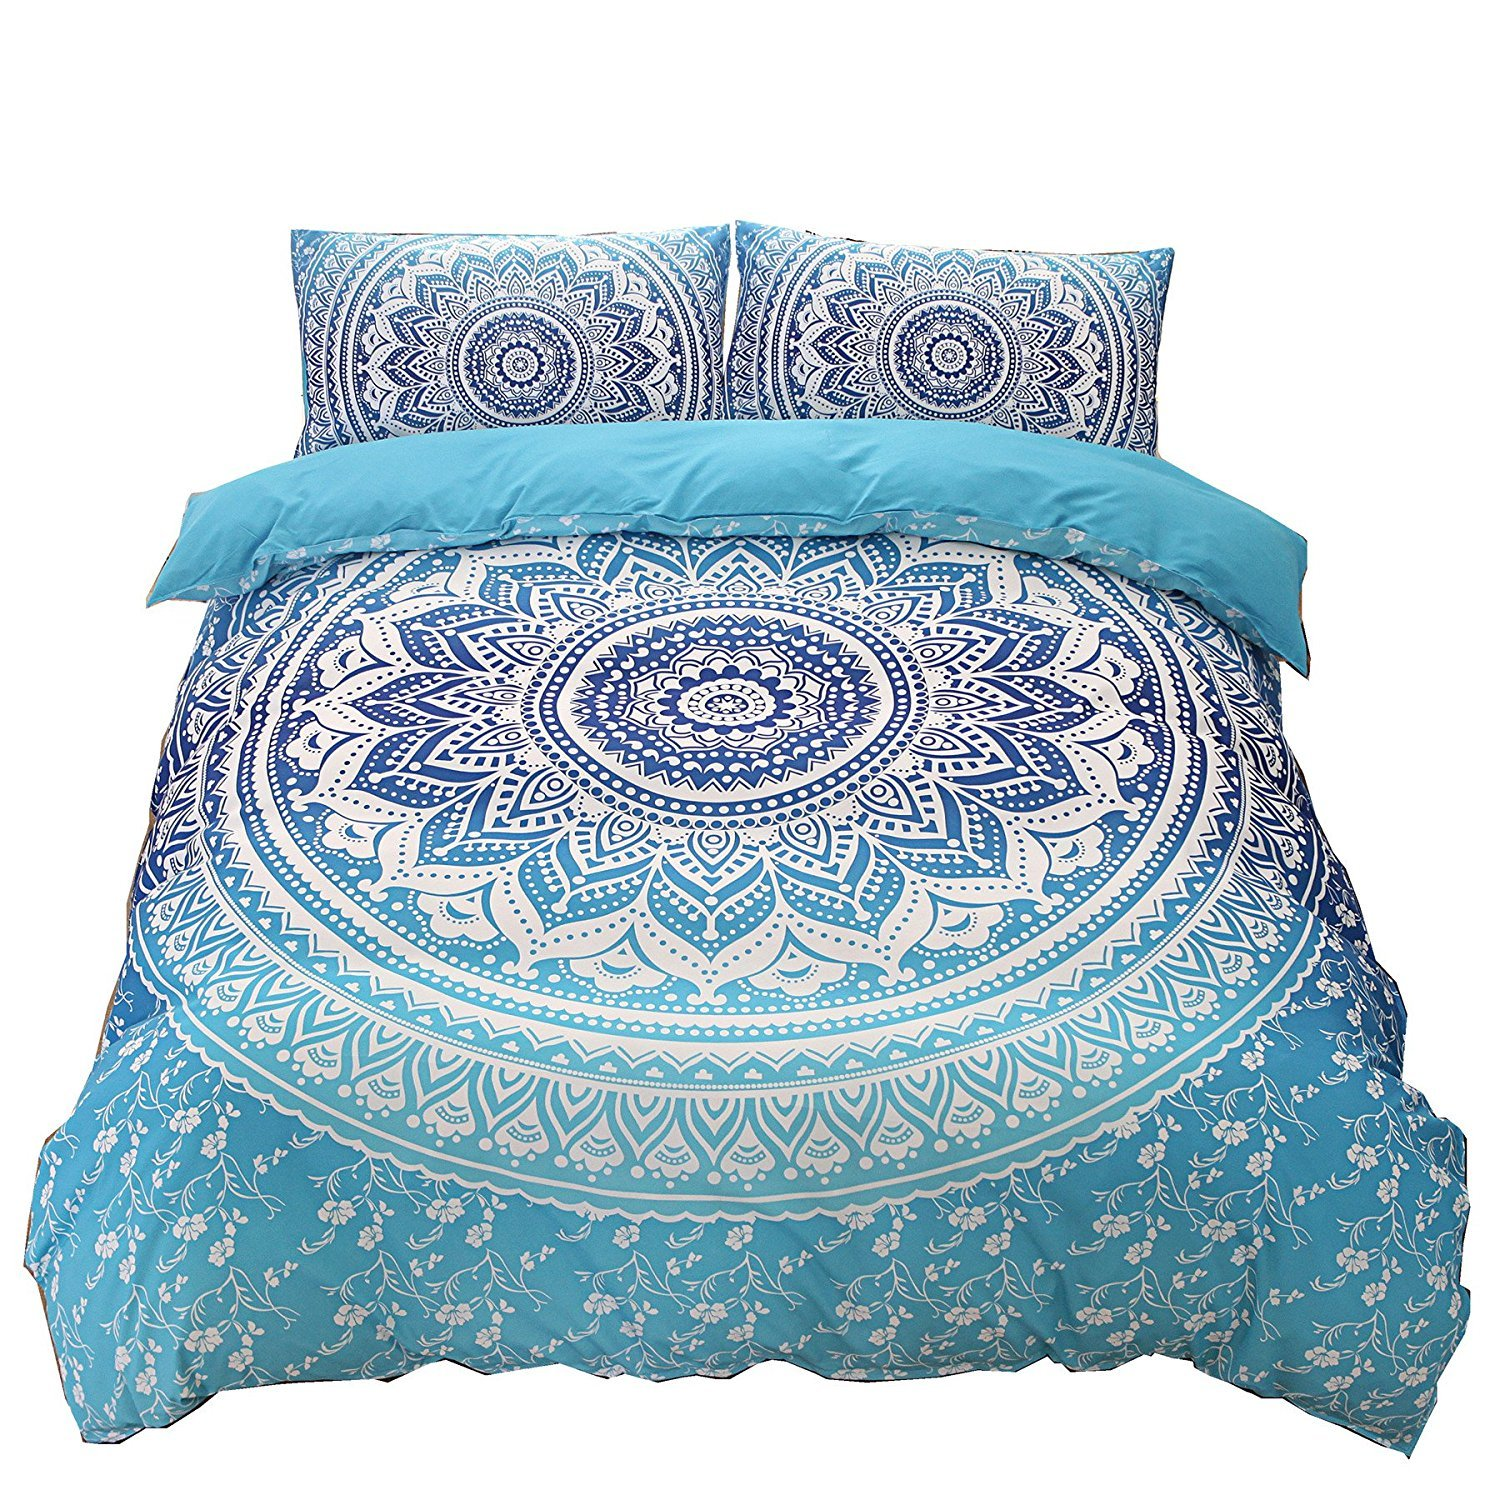 DasyFly Bohemian Bedding Blue Mandala Duvet Cover Set Queen Size 3pc Luxury Boho Chic Floral Bedding Soft Microfiber Mandala Hippie Quilt Duvet Cover with Zipper Closure